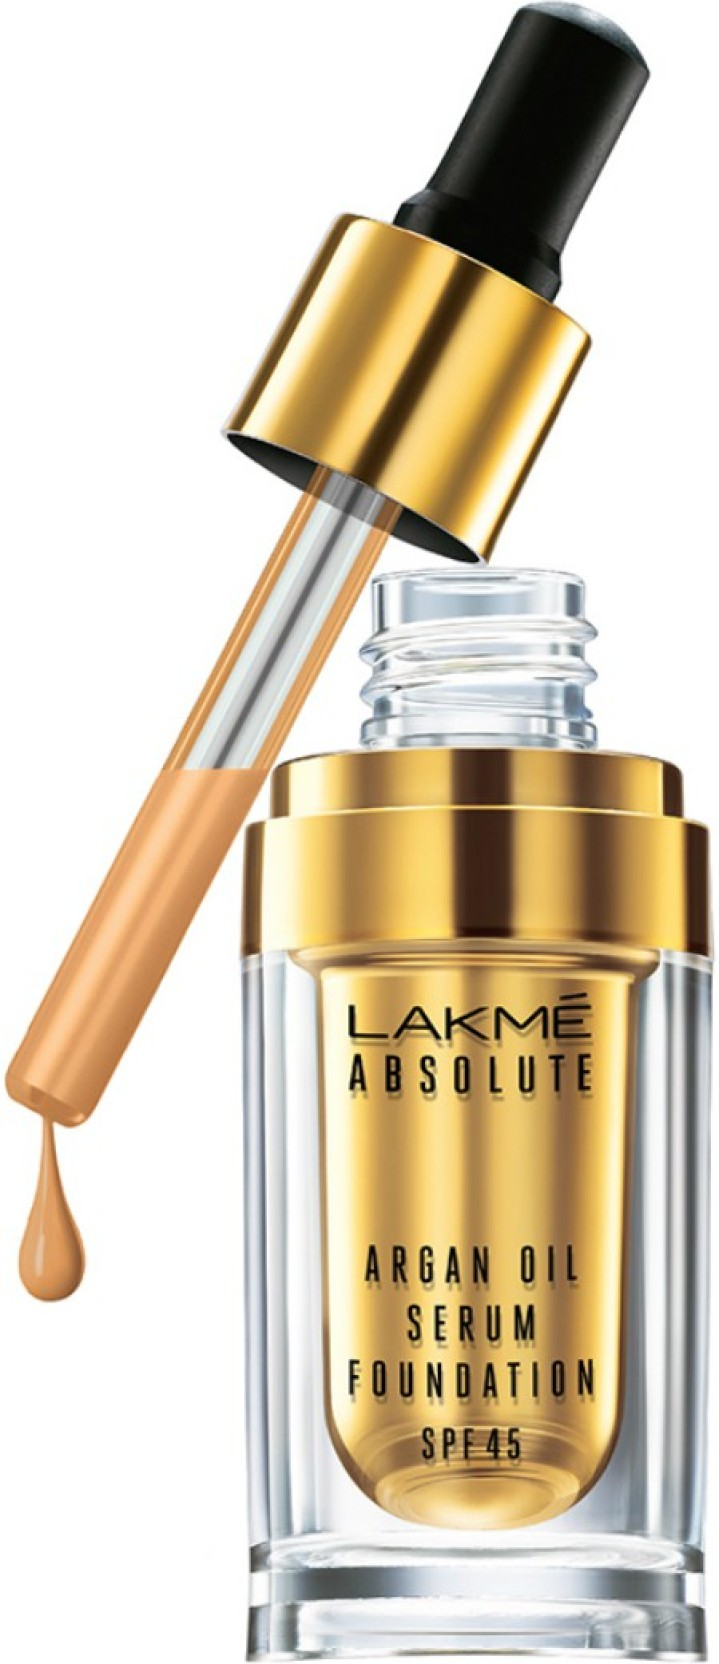 Lakme Absolute Argan Oil Serum With Spf 45 Foundation Price In Add To Cart